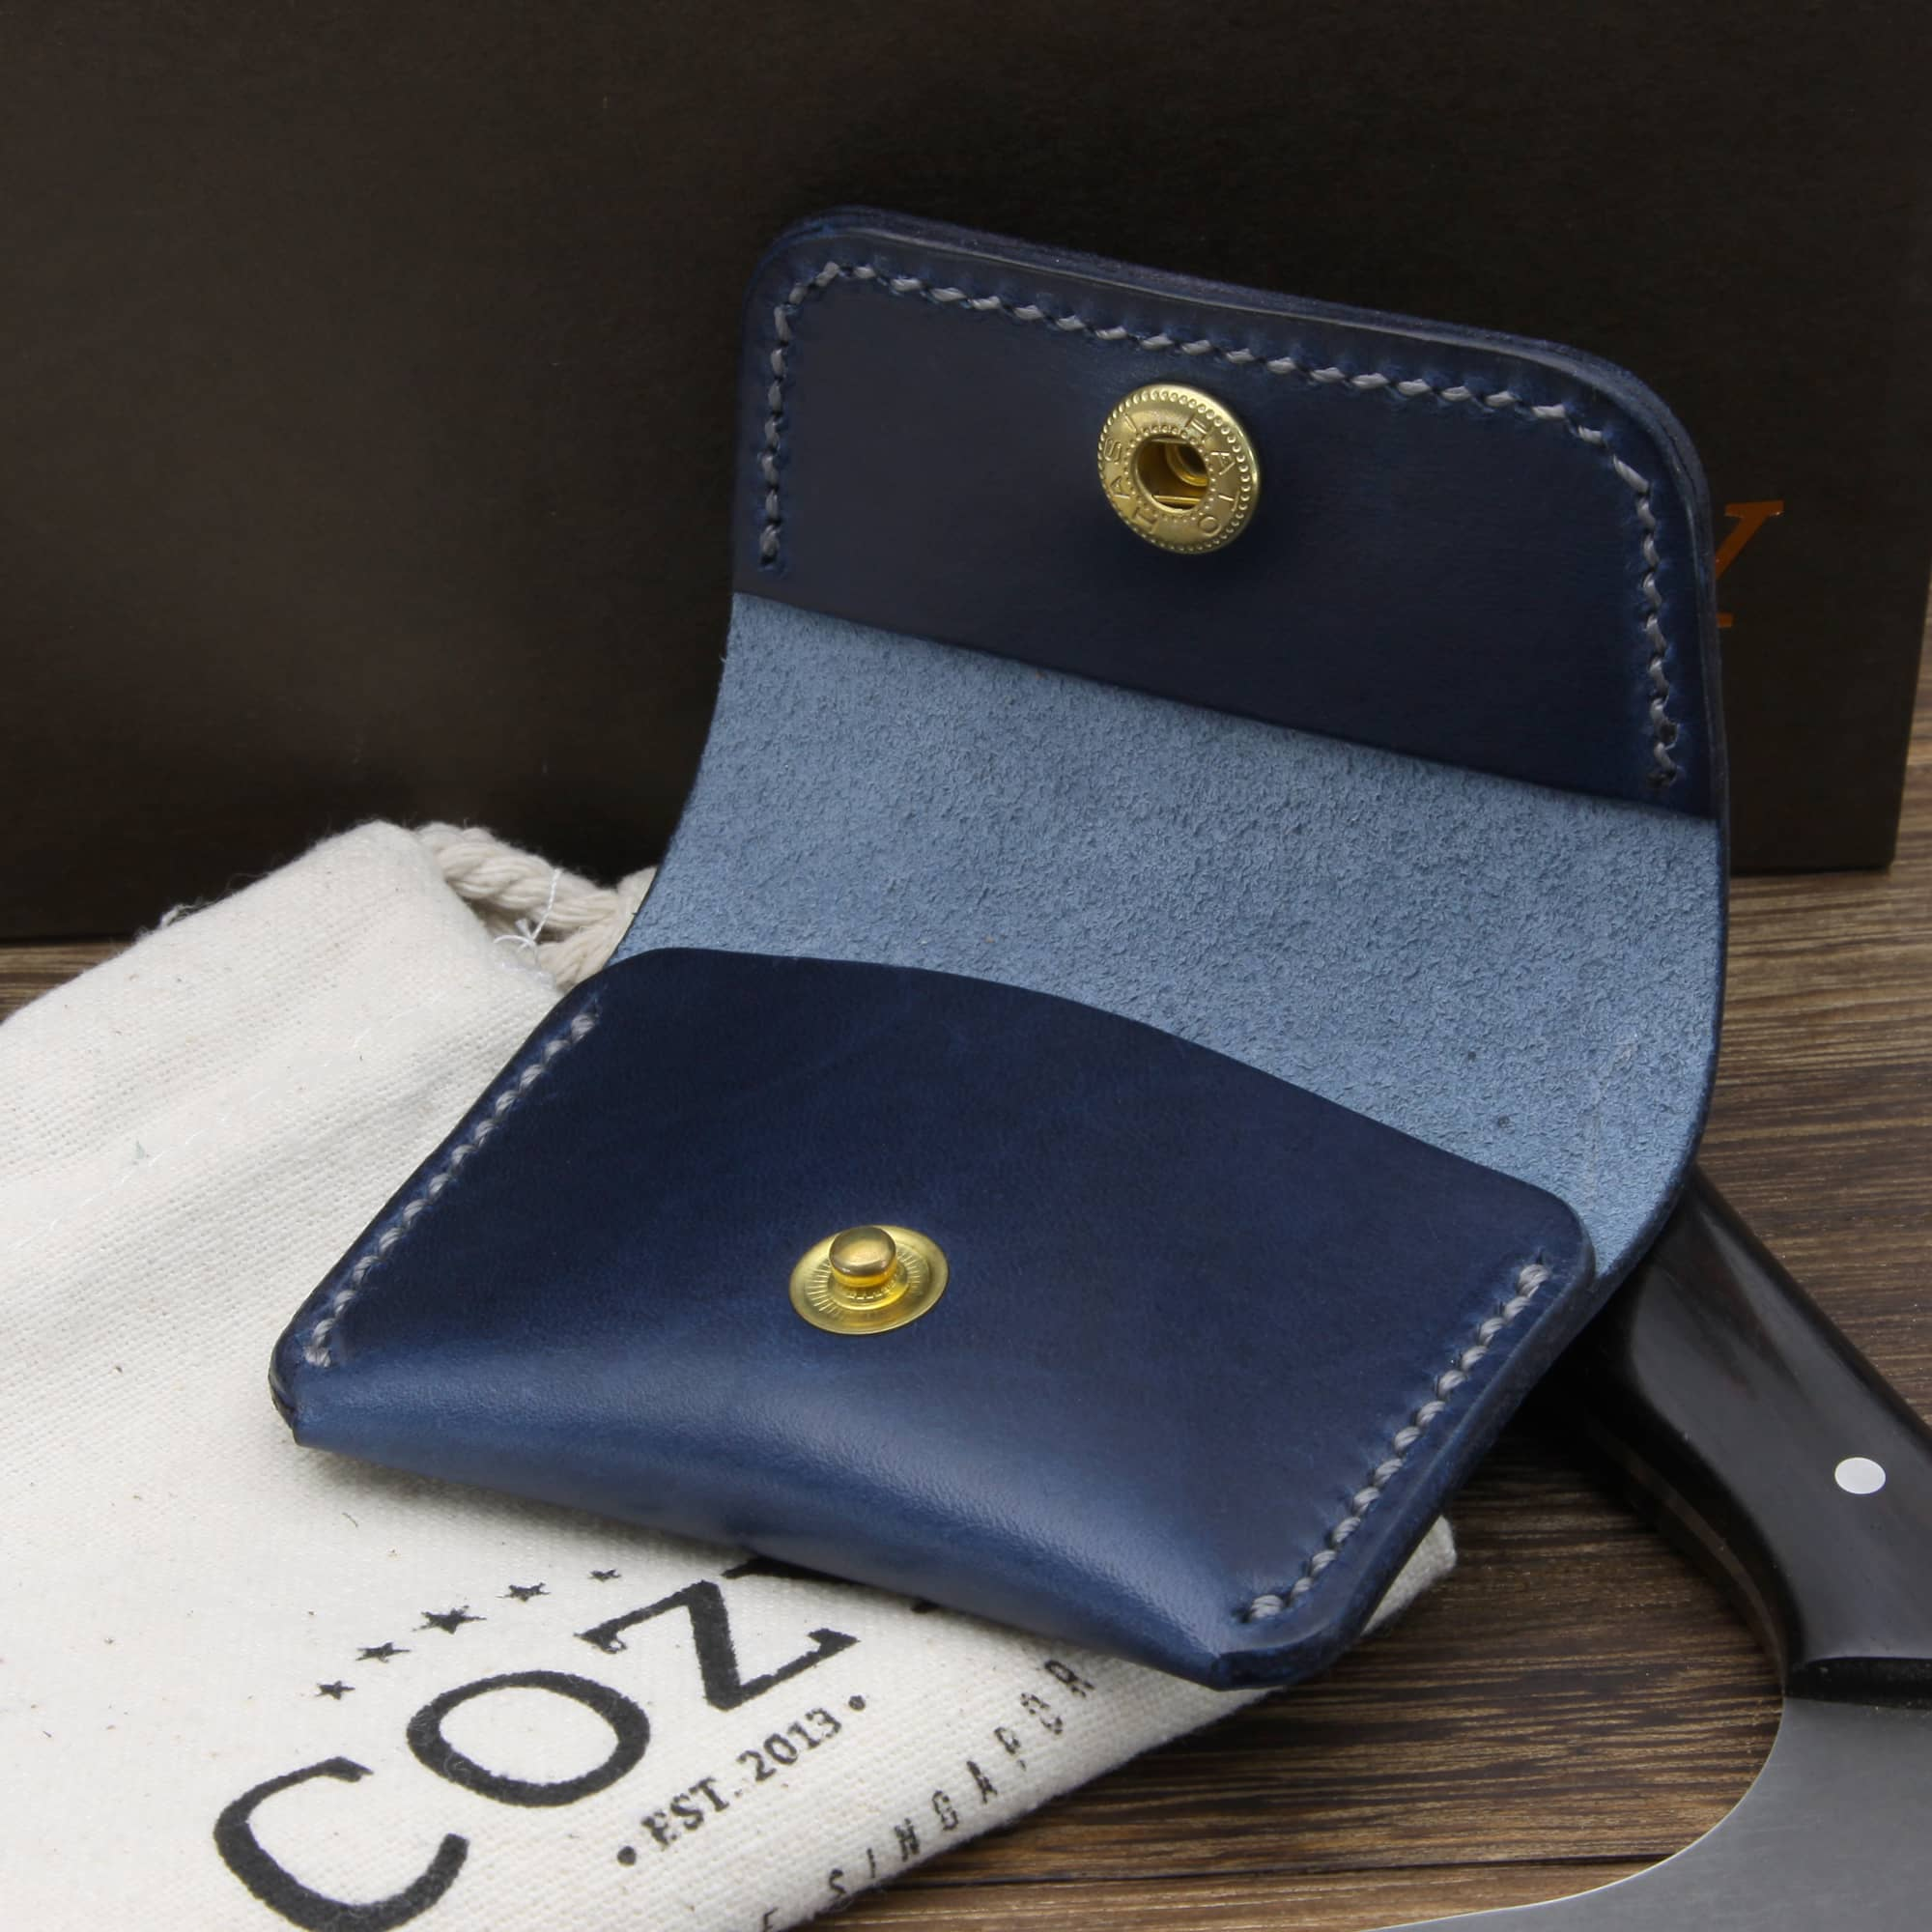 Leather Coin Purse, Sequoia 108 | Cozy Handmade